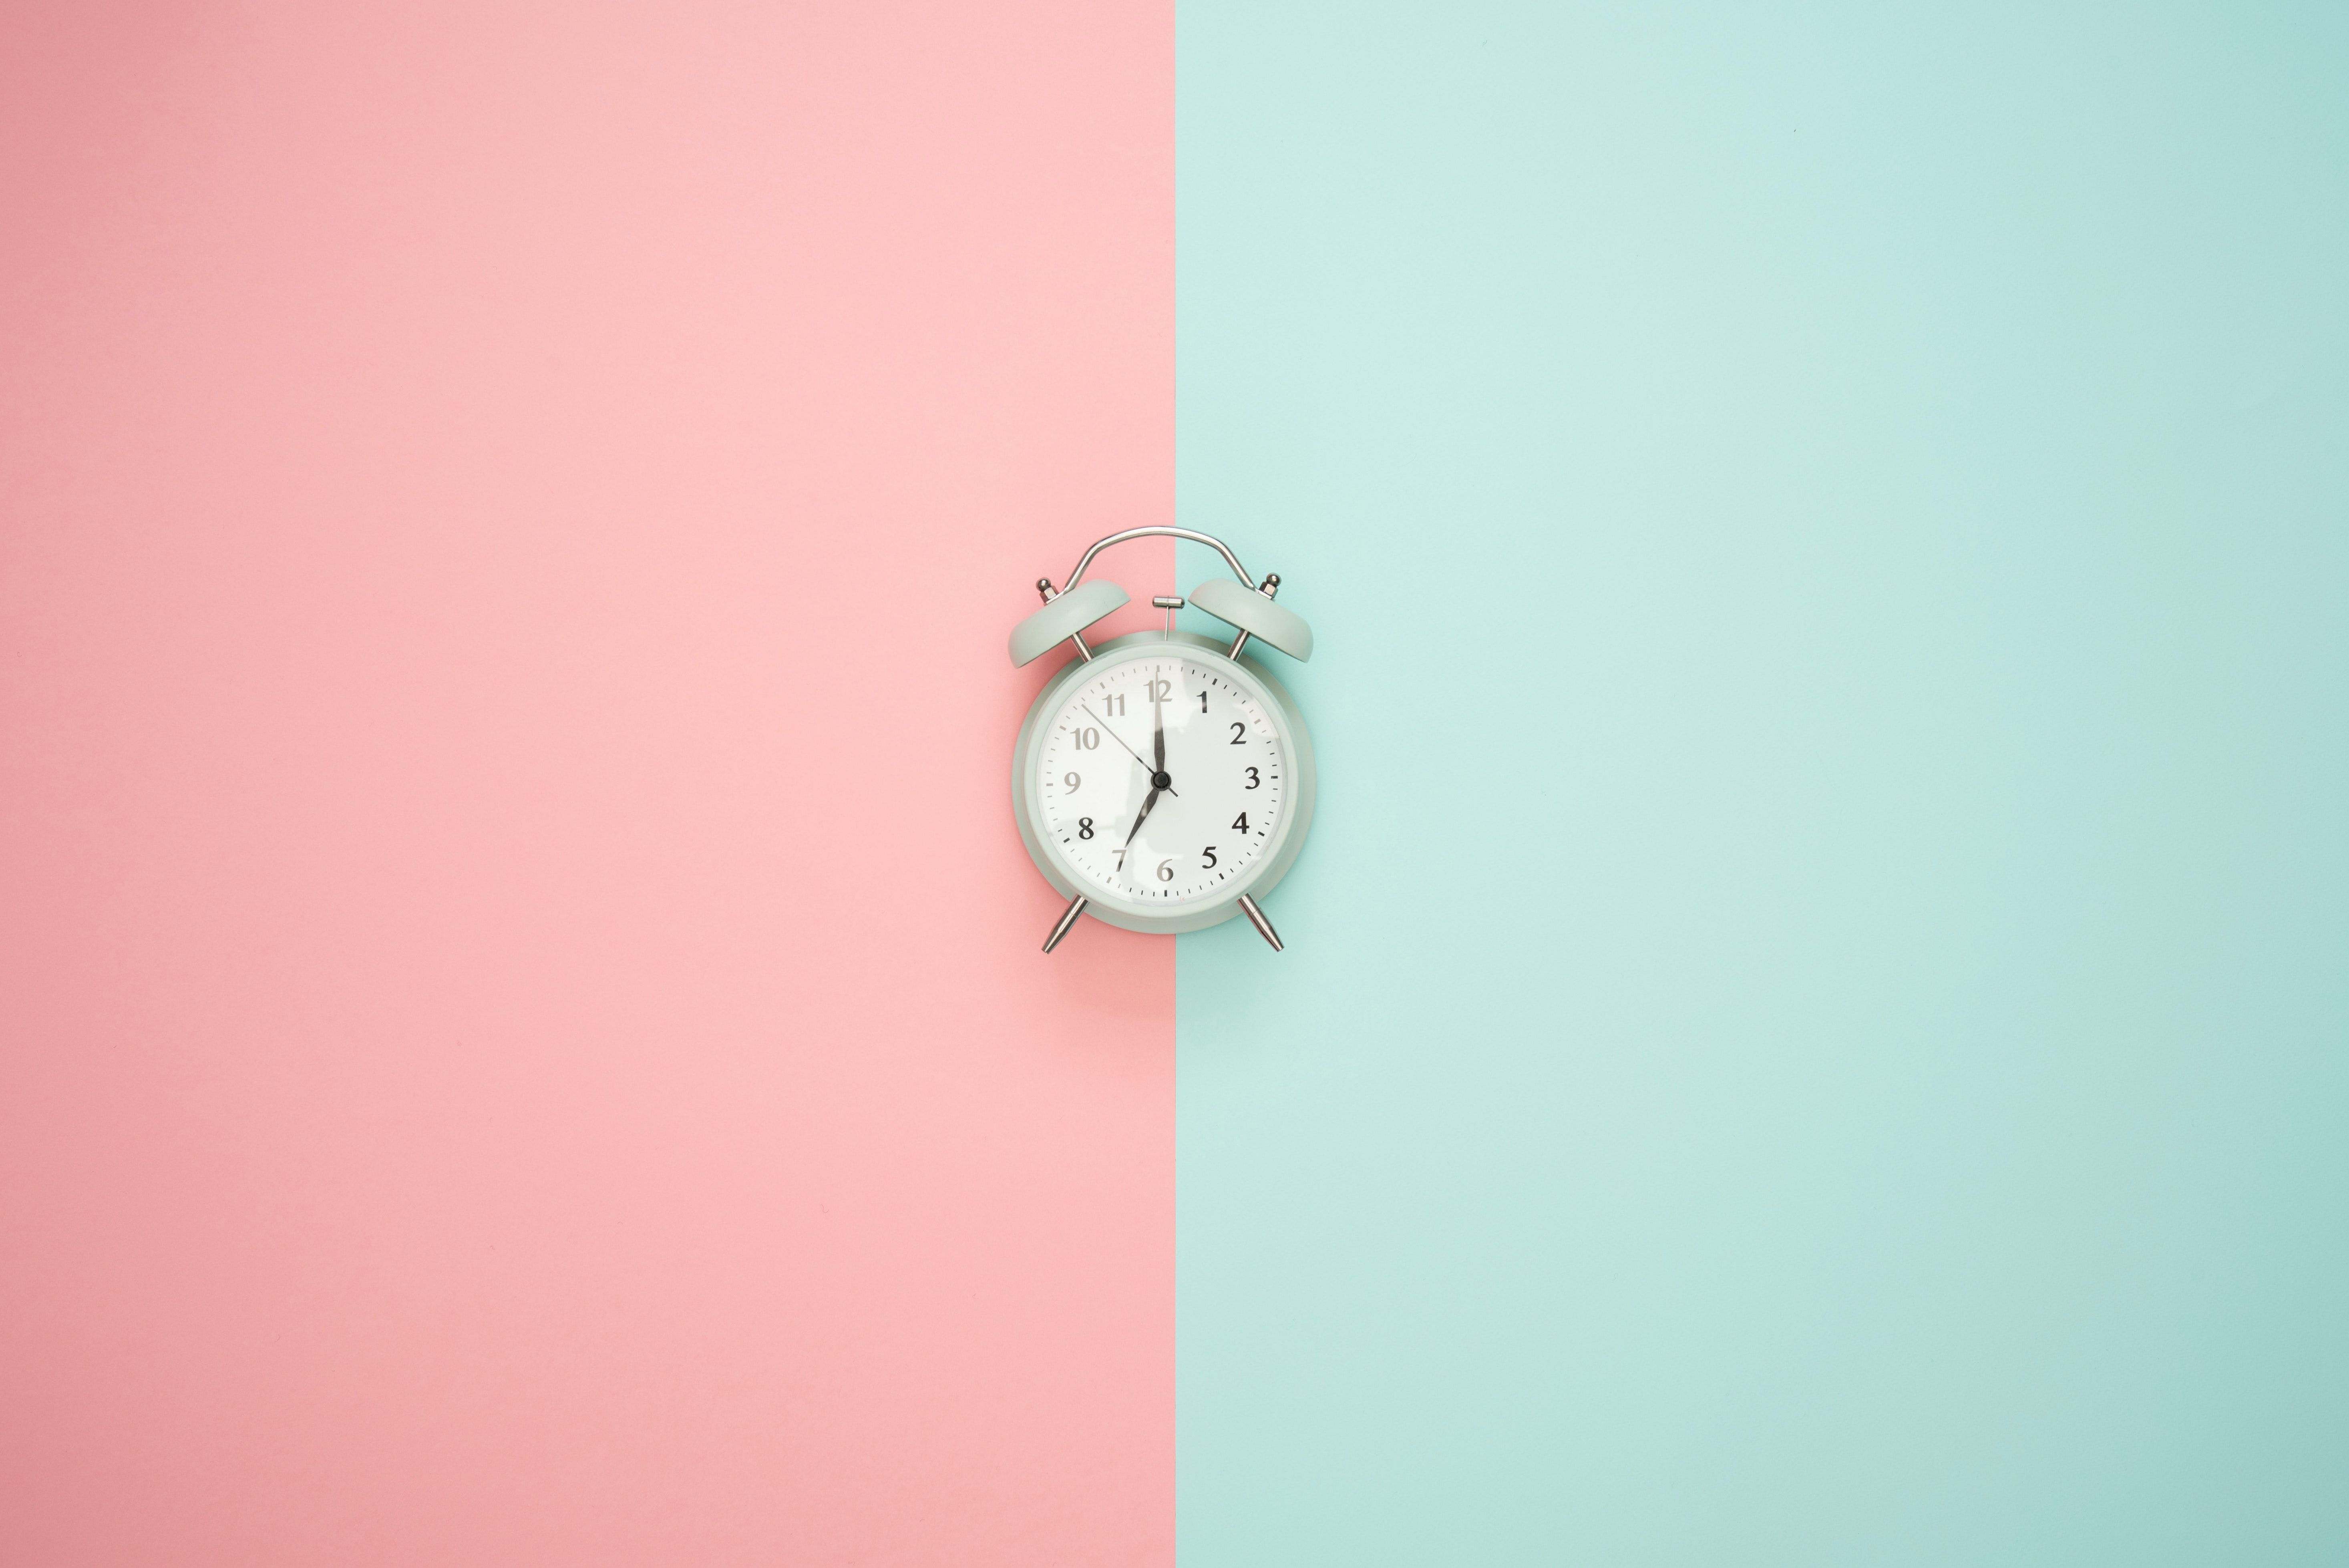 A traditional alarm clock in the center of two colored background